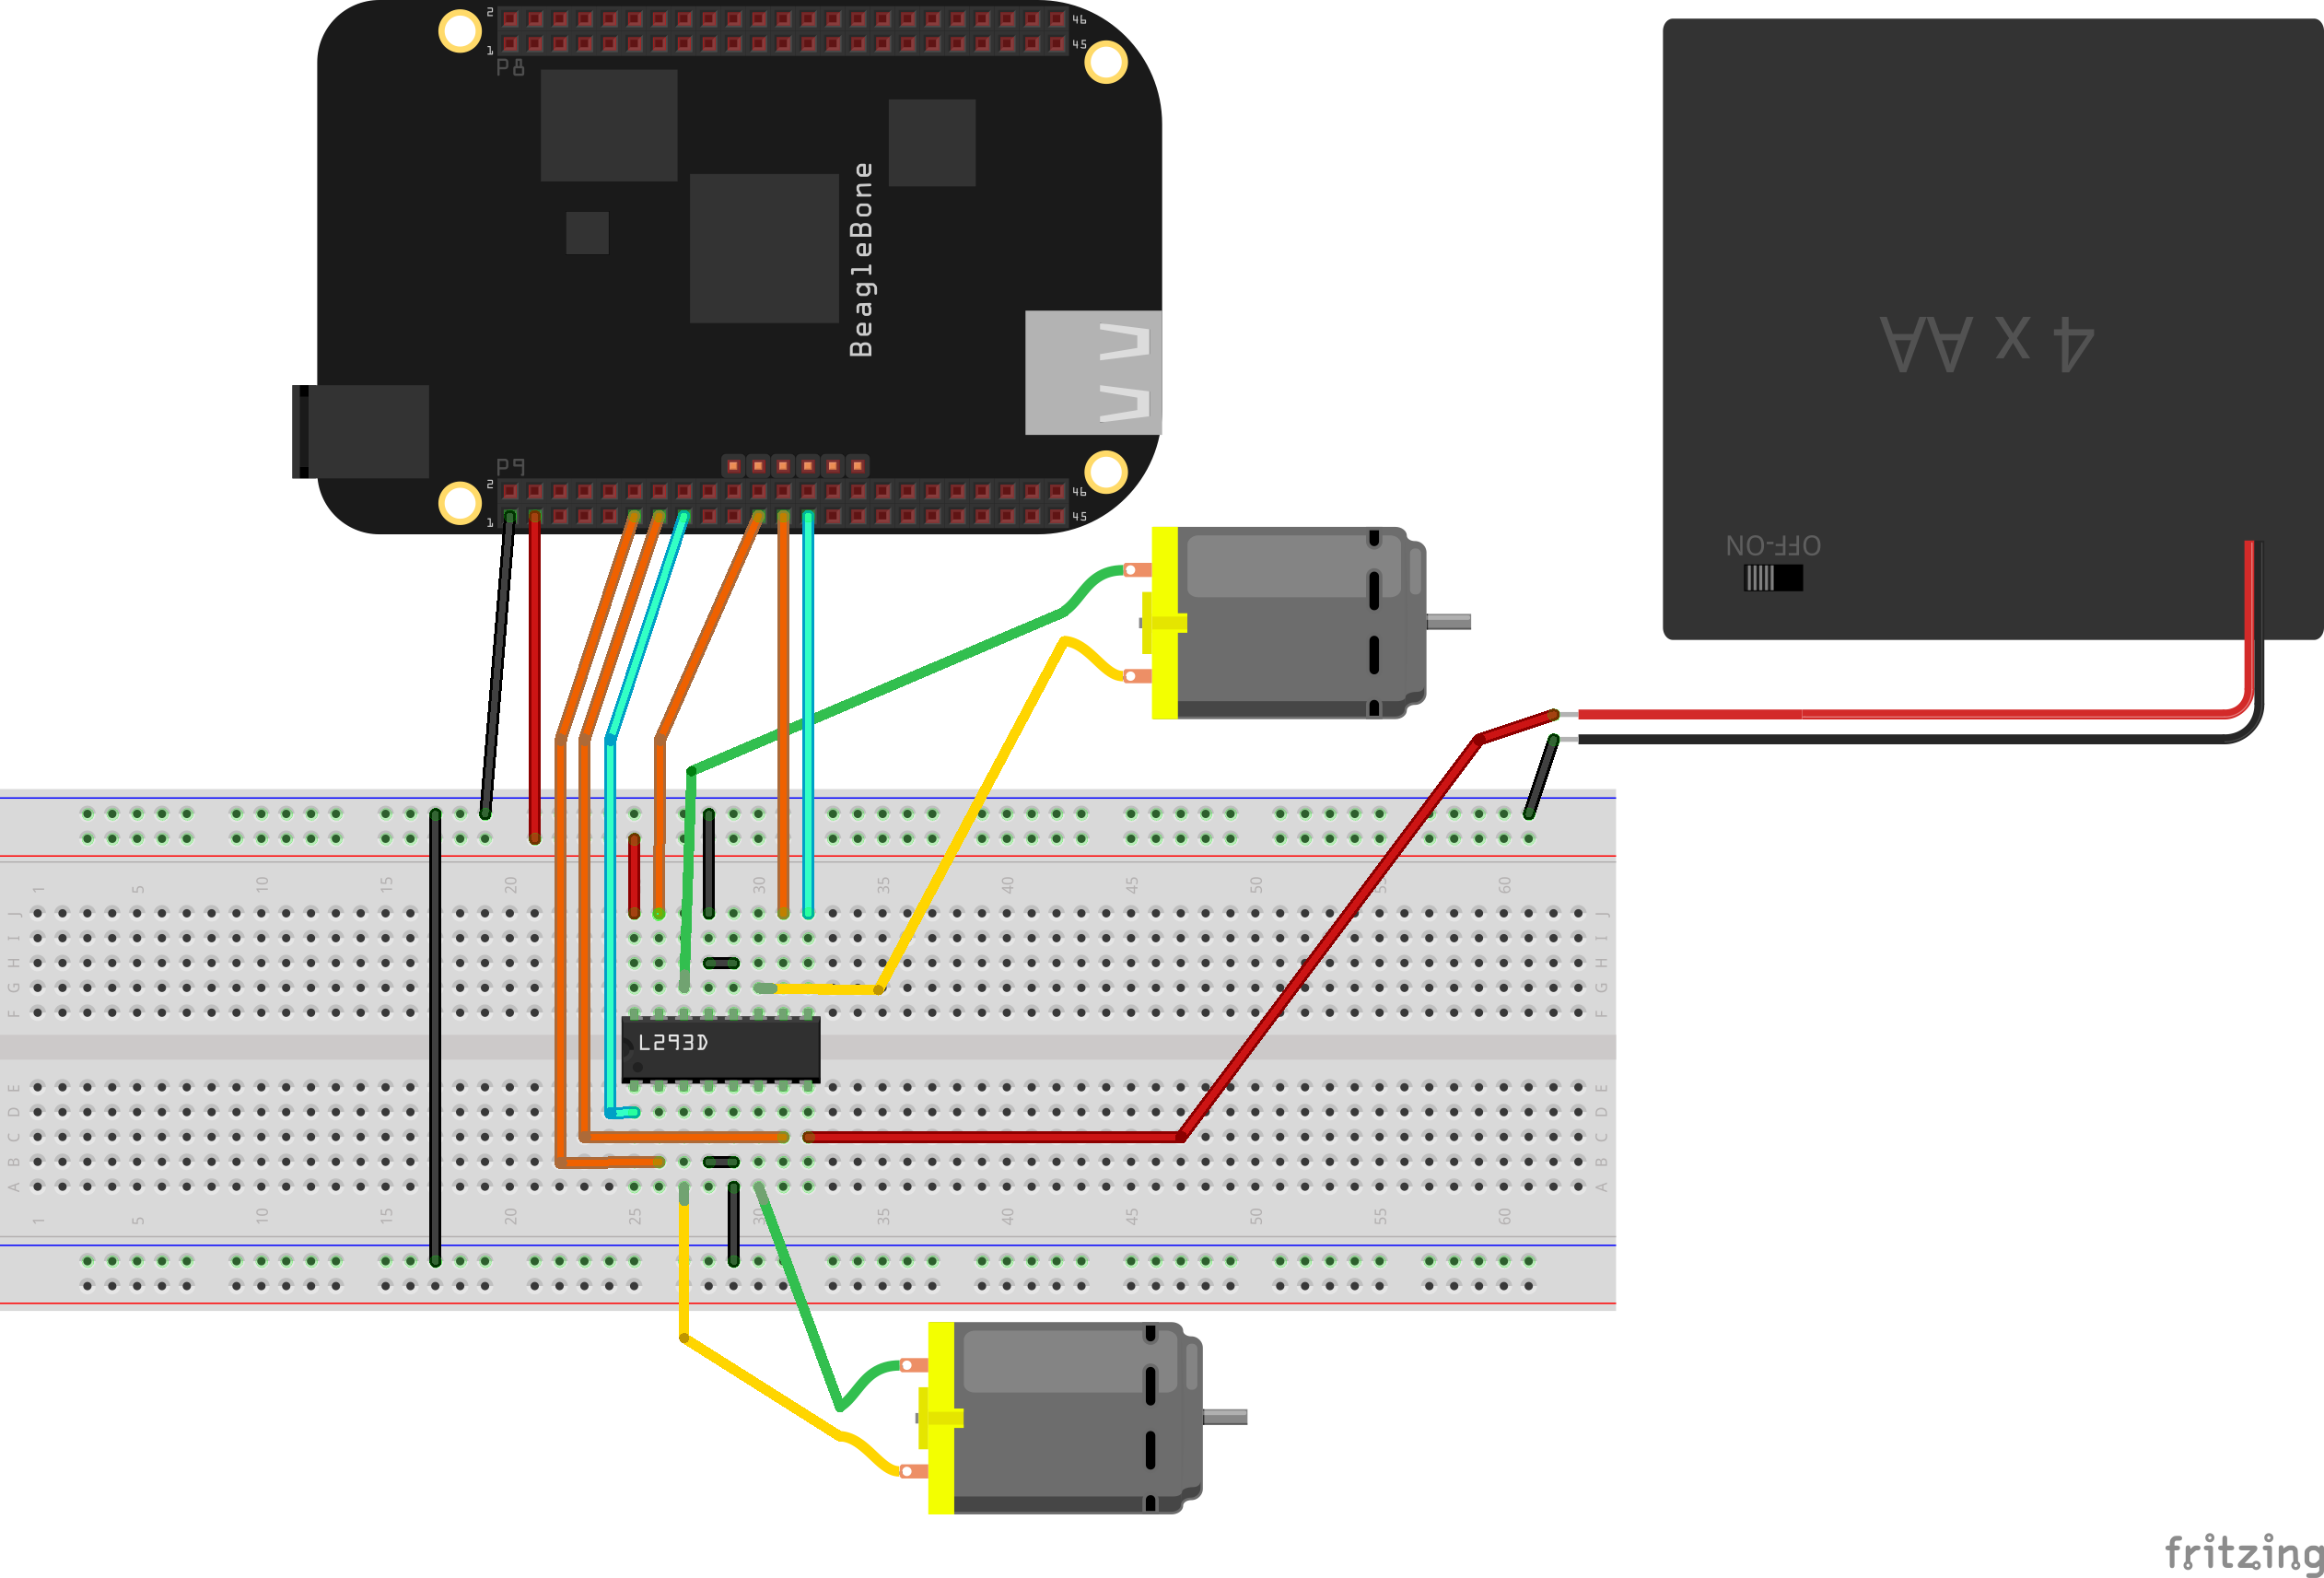 Controlling a Motor with an H-Bridge - ster.io on geiger counter schematic, electronics schematic, arduino schematic, breadboard schematic, quadcopter schematic, bluetooth schematic, xbee schematic, usb schematic, msp430 schematic, apple schematic, wireless schematic, gps schematic, lcd schematic, solar schematic, flux capacitor schematic,